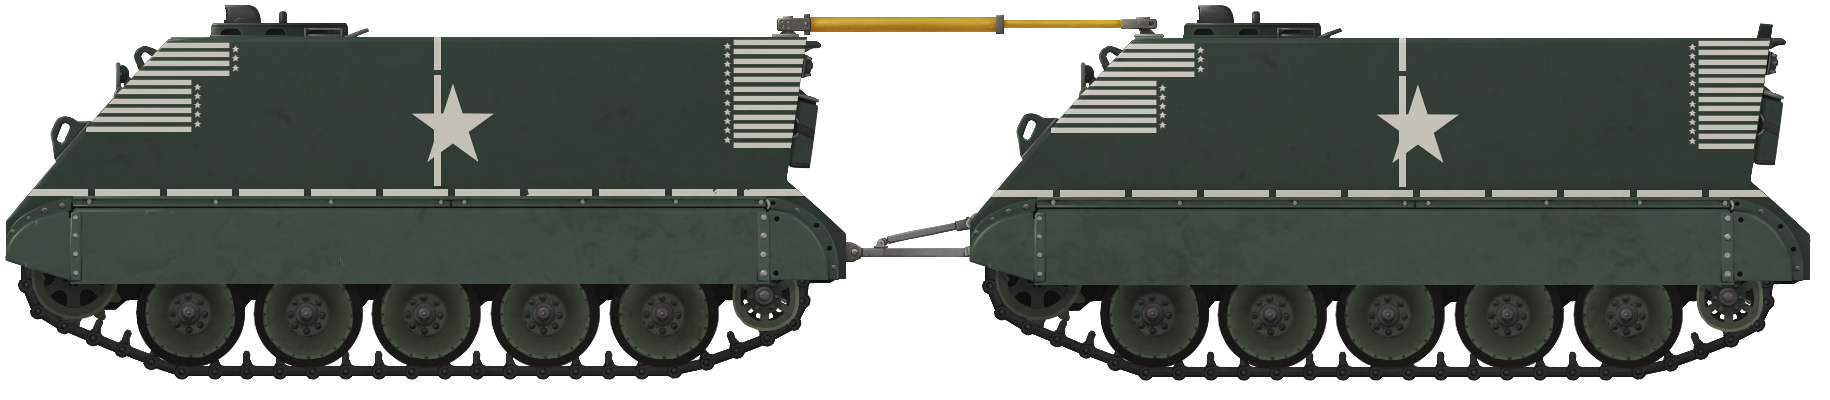 M226 (M113 Cybernetically Coupled Research Vehicle 'CCRV')